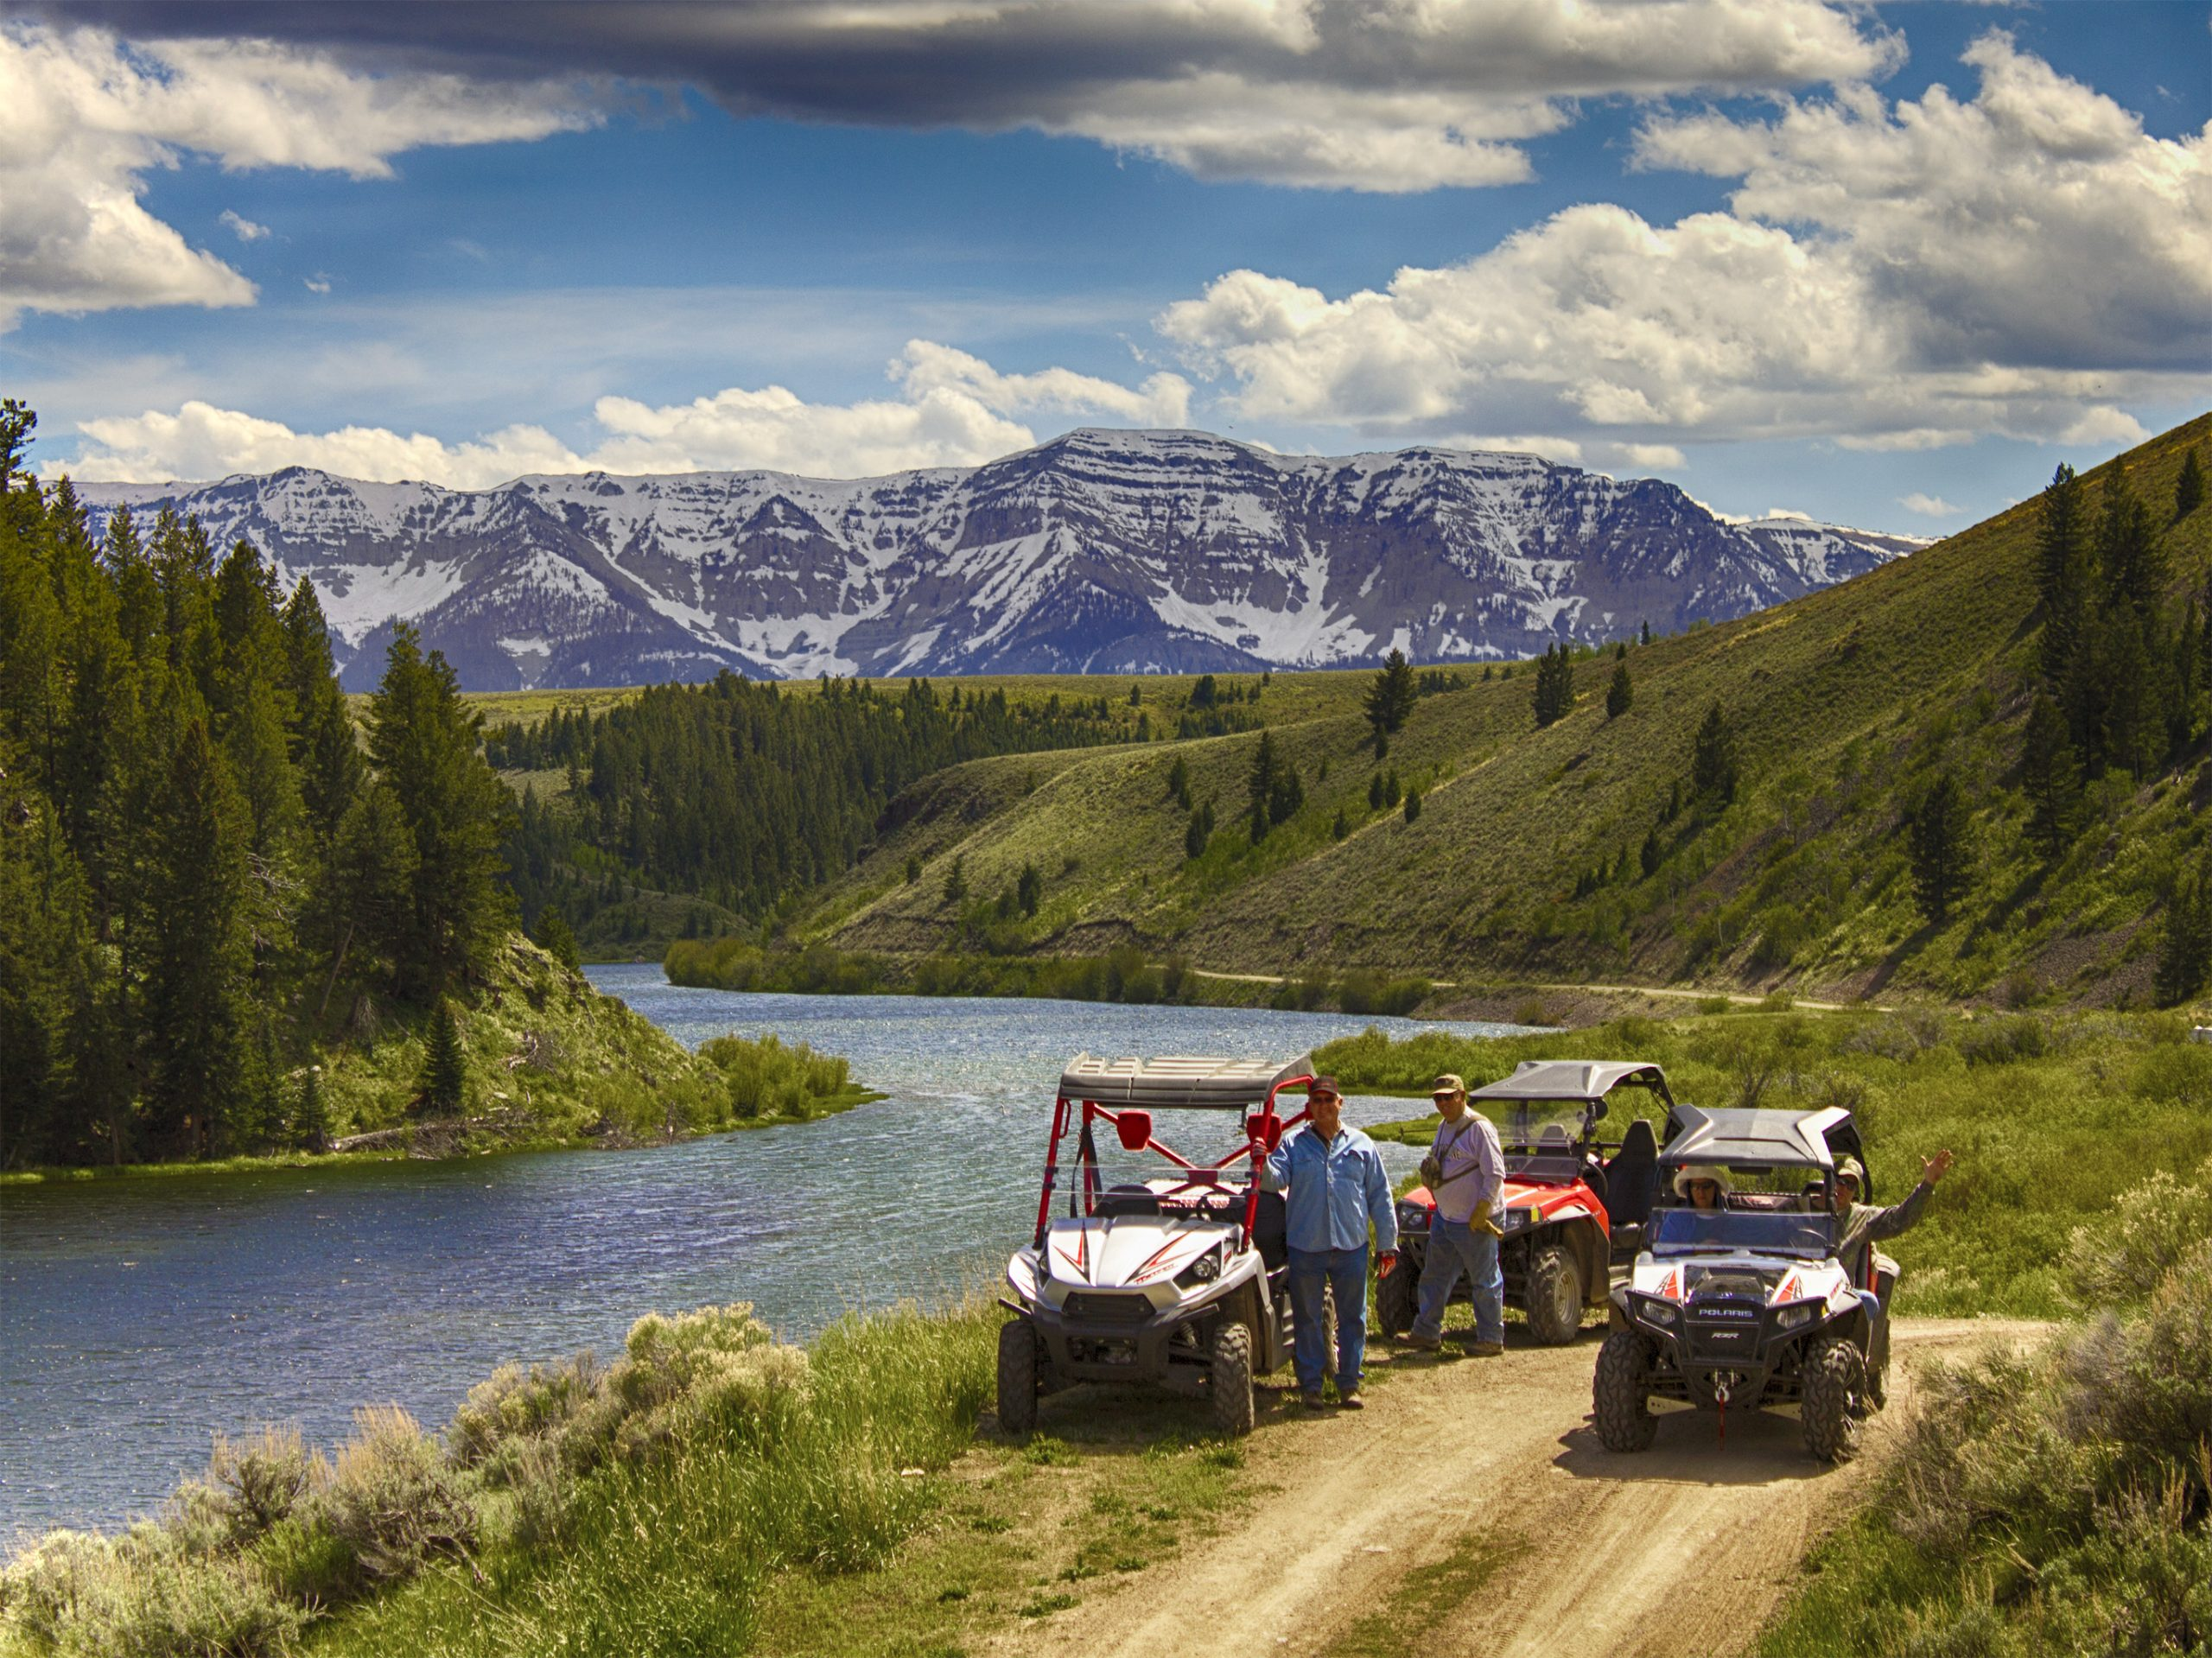 Off road vehicles along river in the mountains